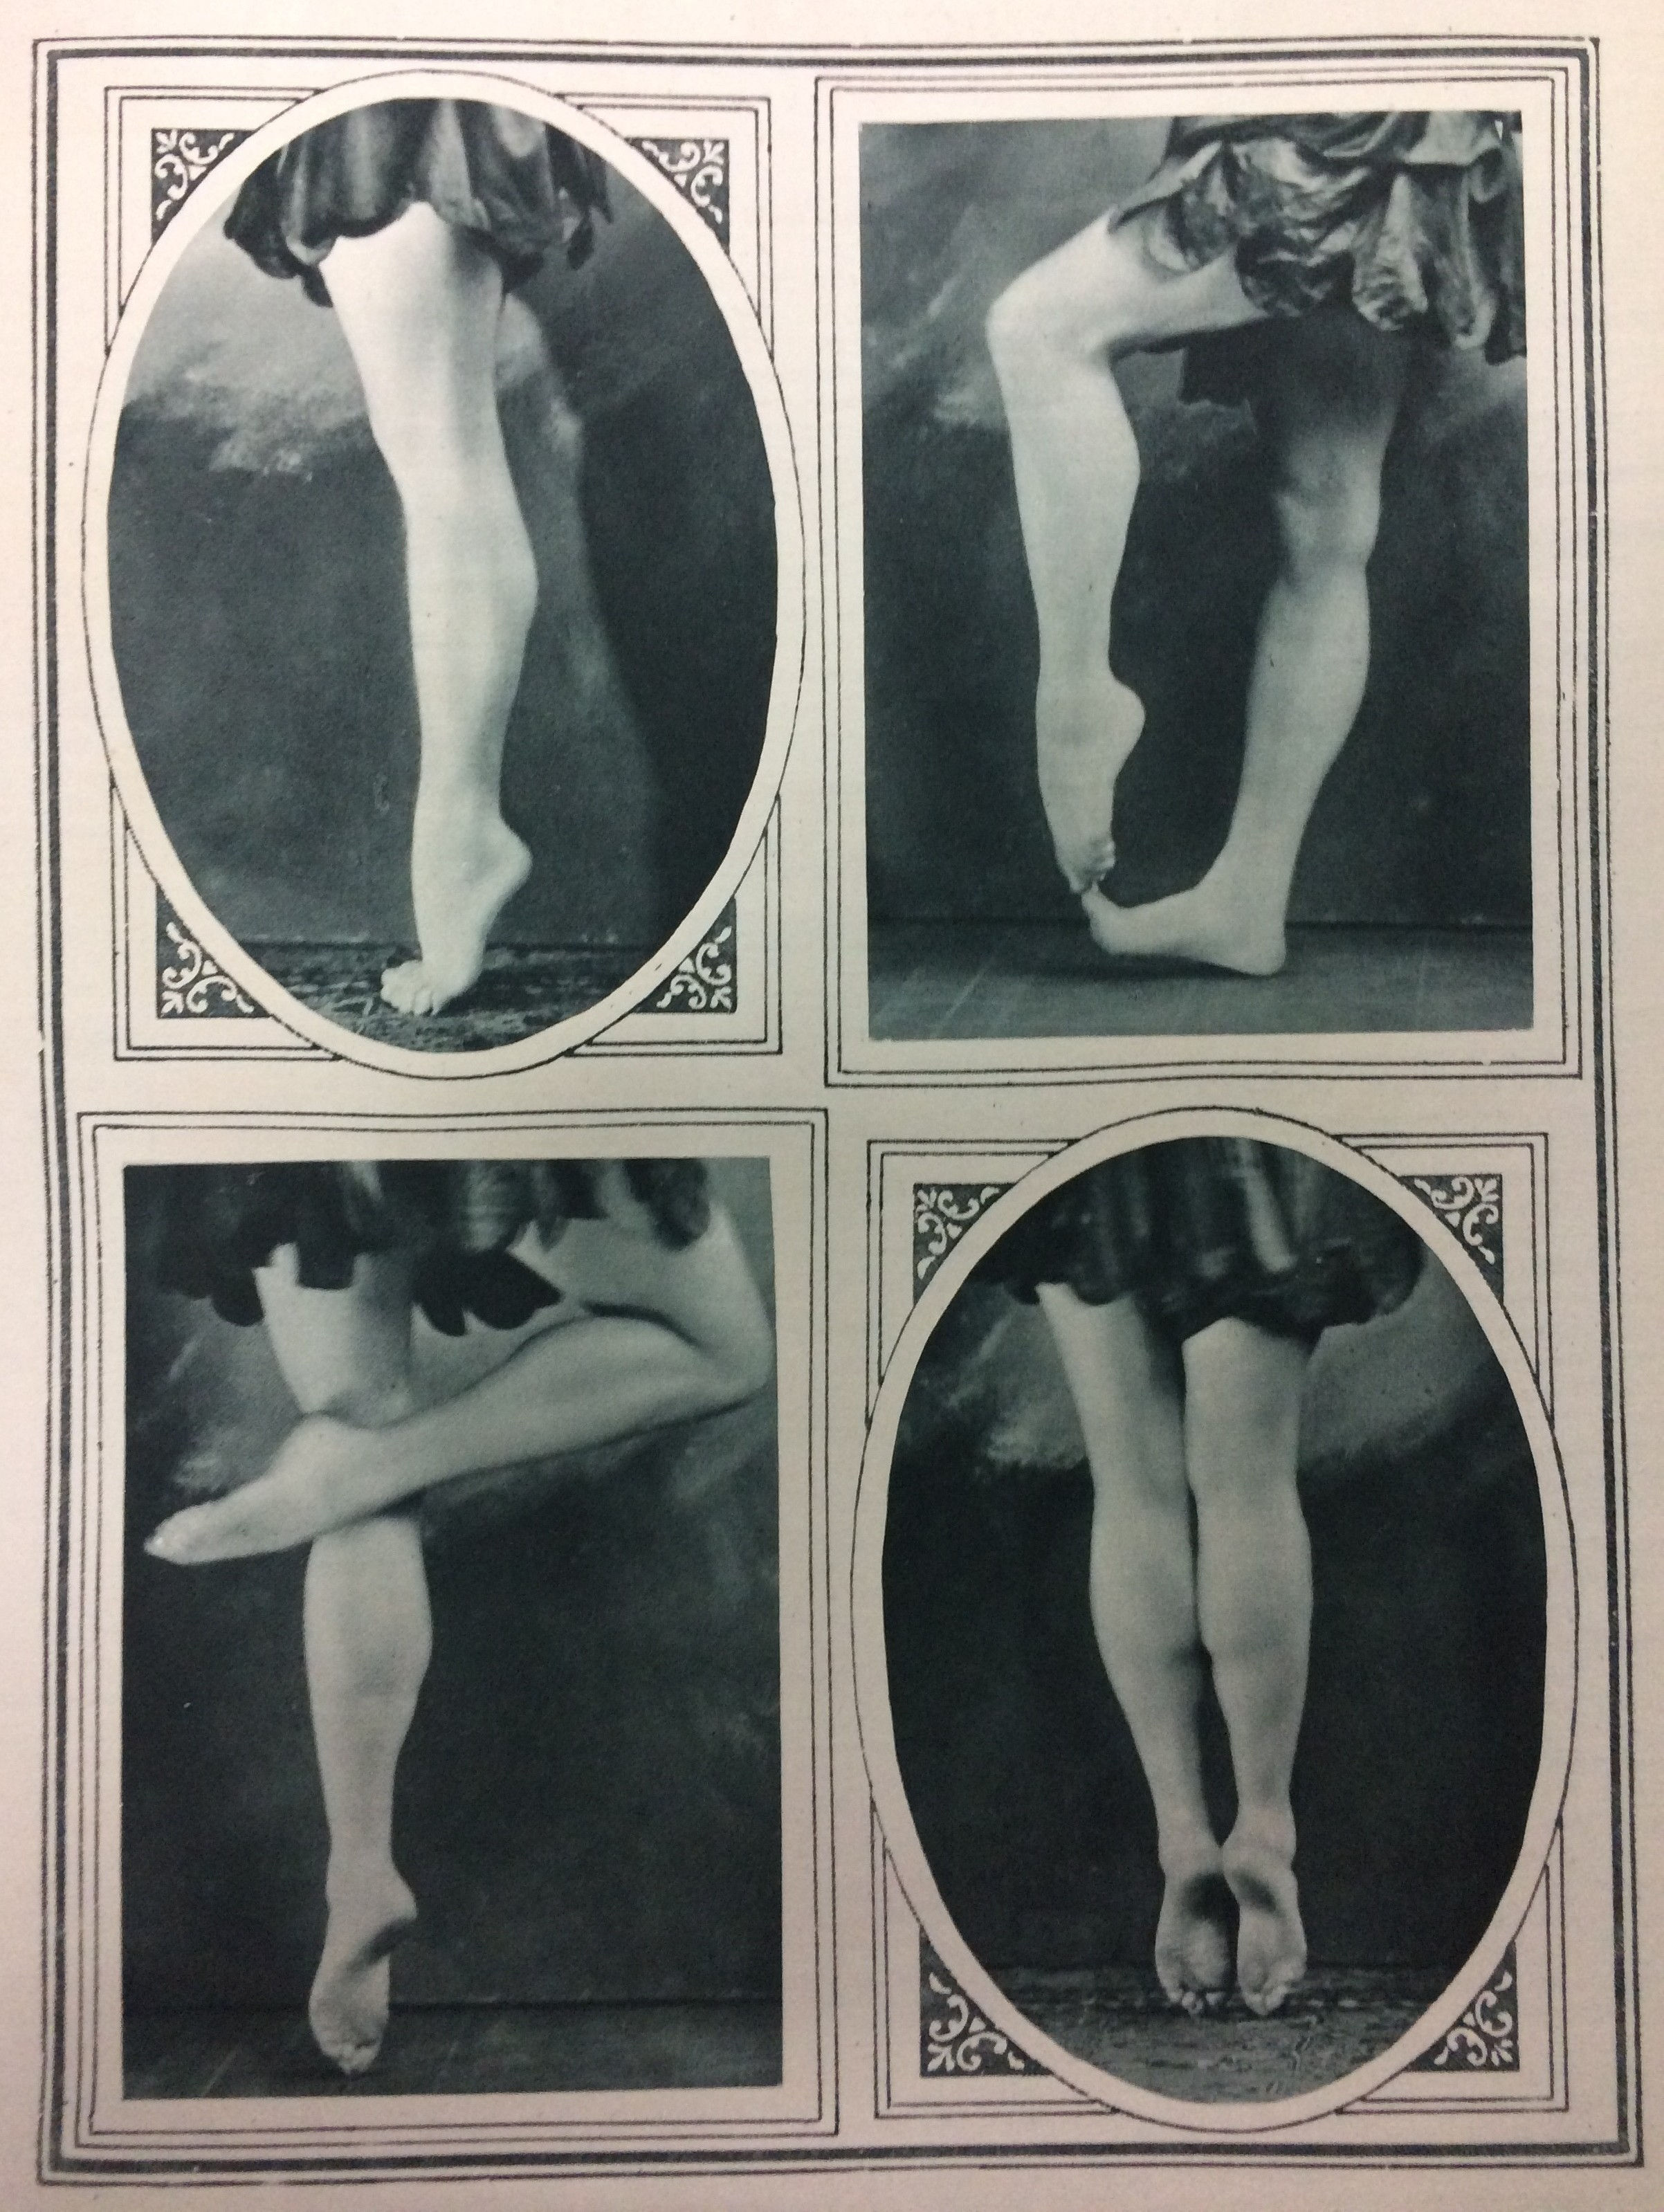 The original caption in 'The Sketch' in June 1919 read: 'Feats of the unaided feet...for toe-dancing, it will be noted, she can disdain the use of toe-caps...' Feet photographed by Malcolm Arbuthnot.